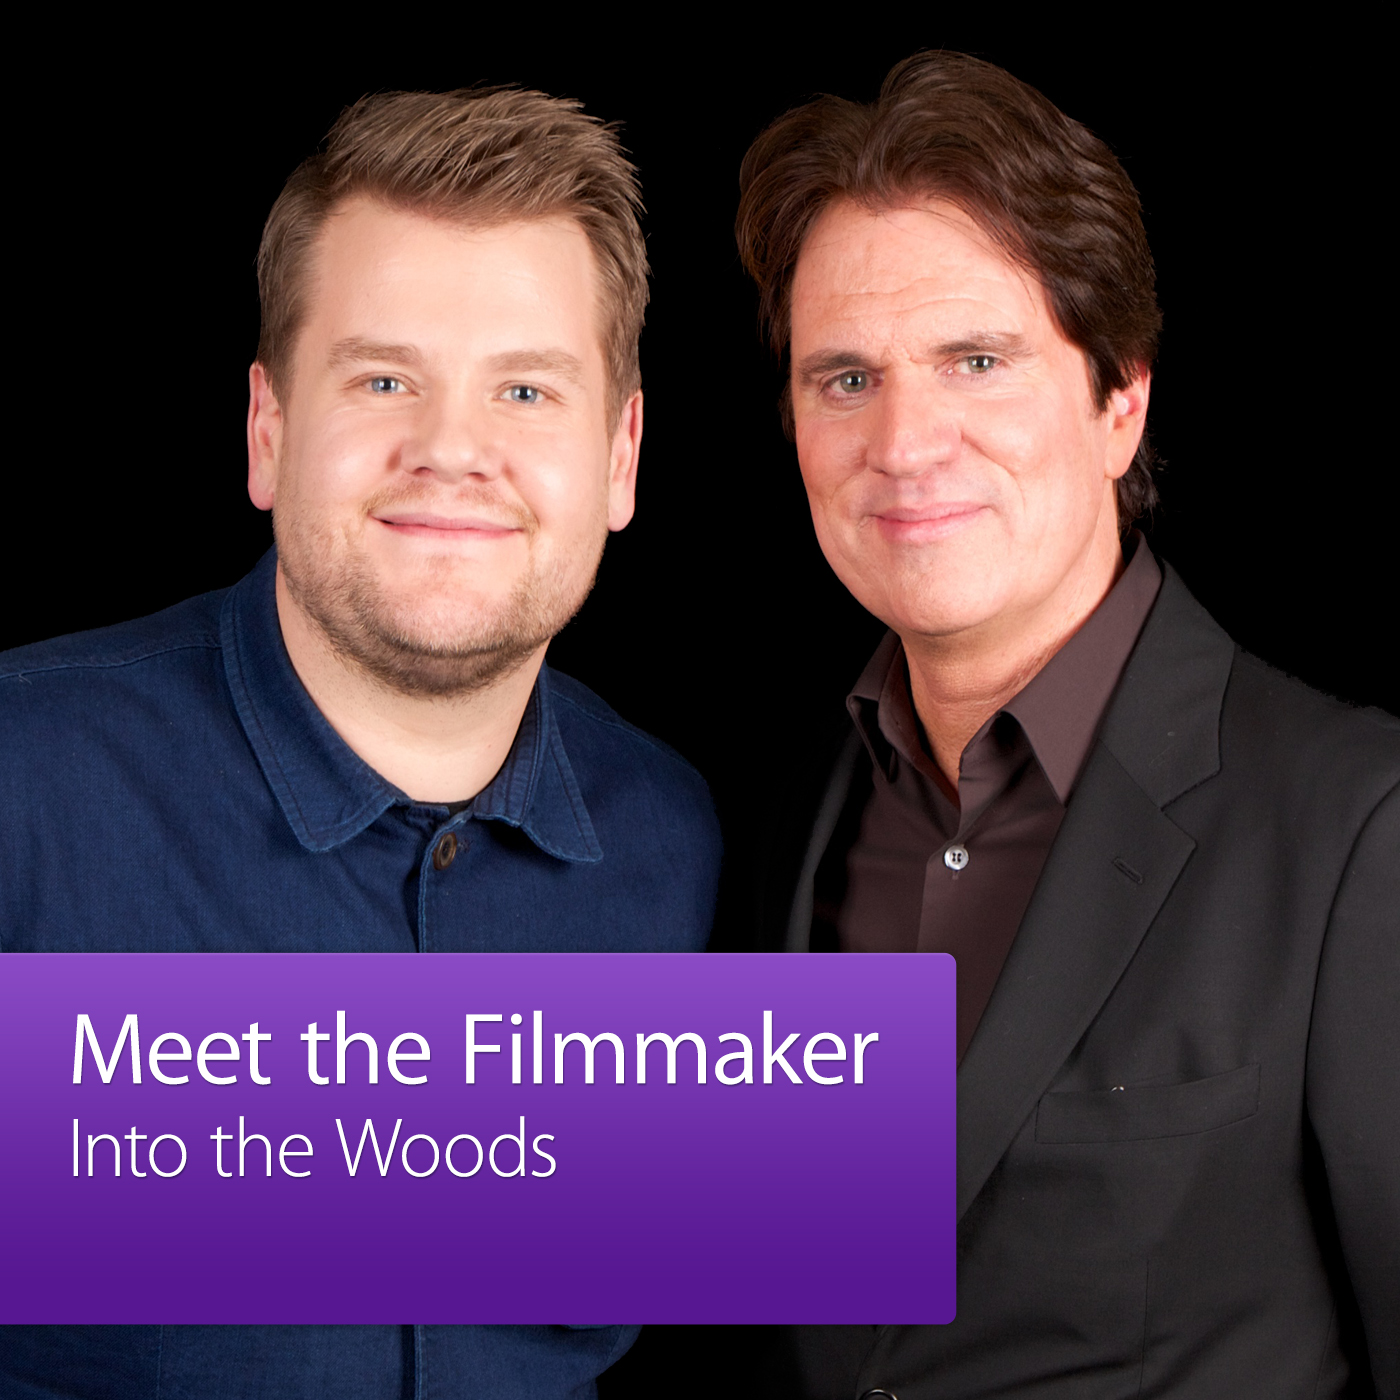 Into the Woods: Meet the Filmmaker